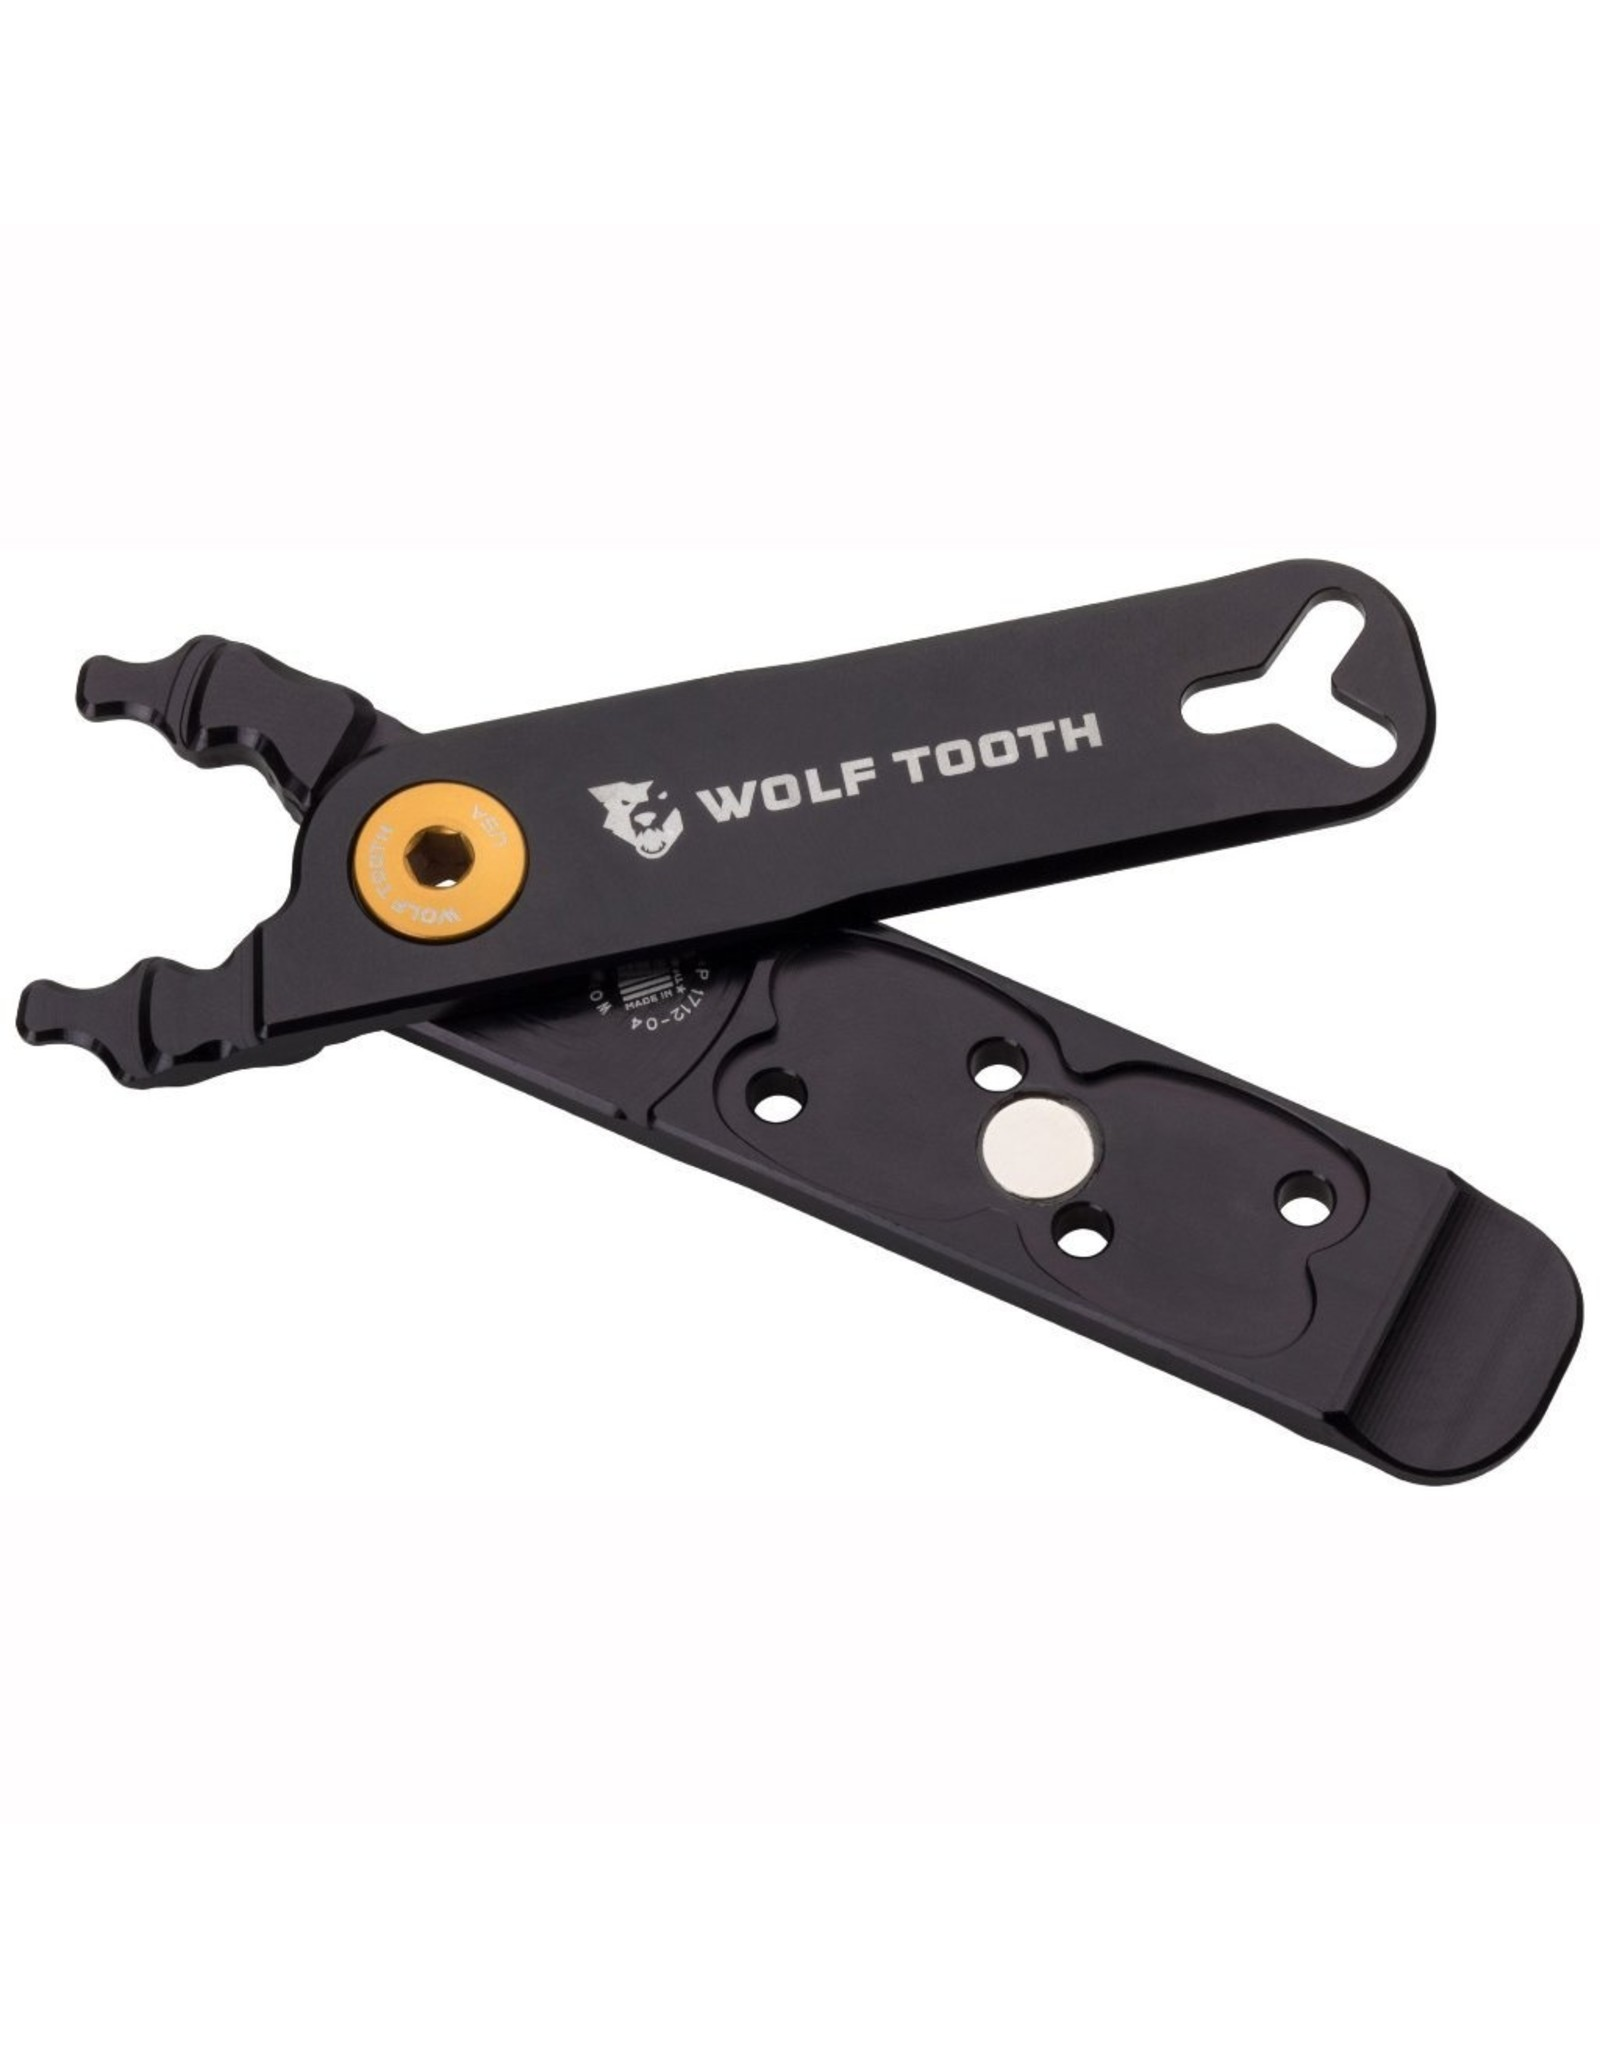 Wolf Tooth Wolf Tooth Master Link Combo Pliers, Black/Gold